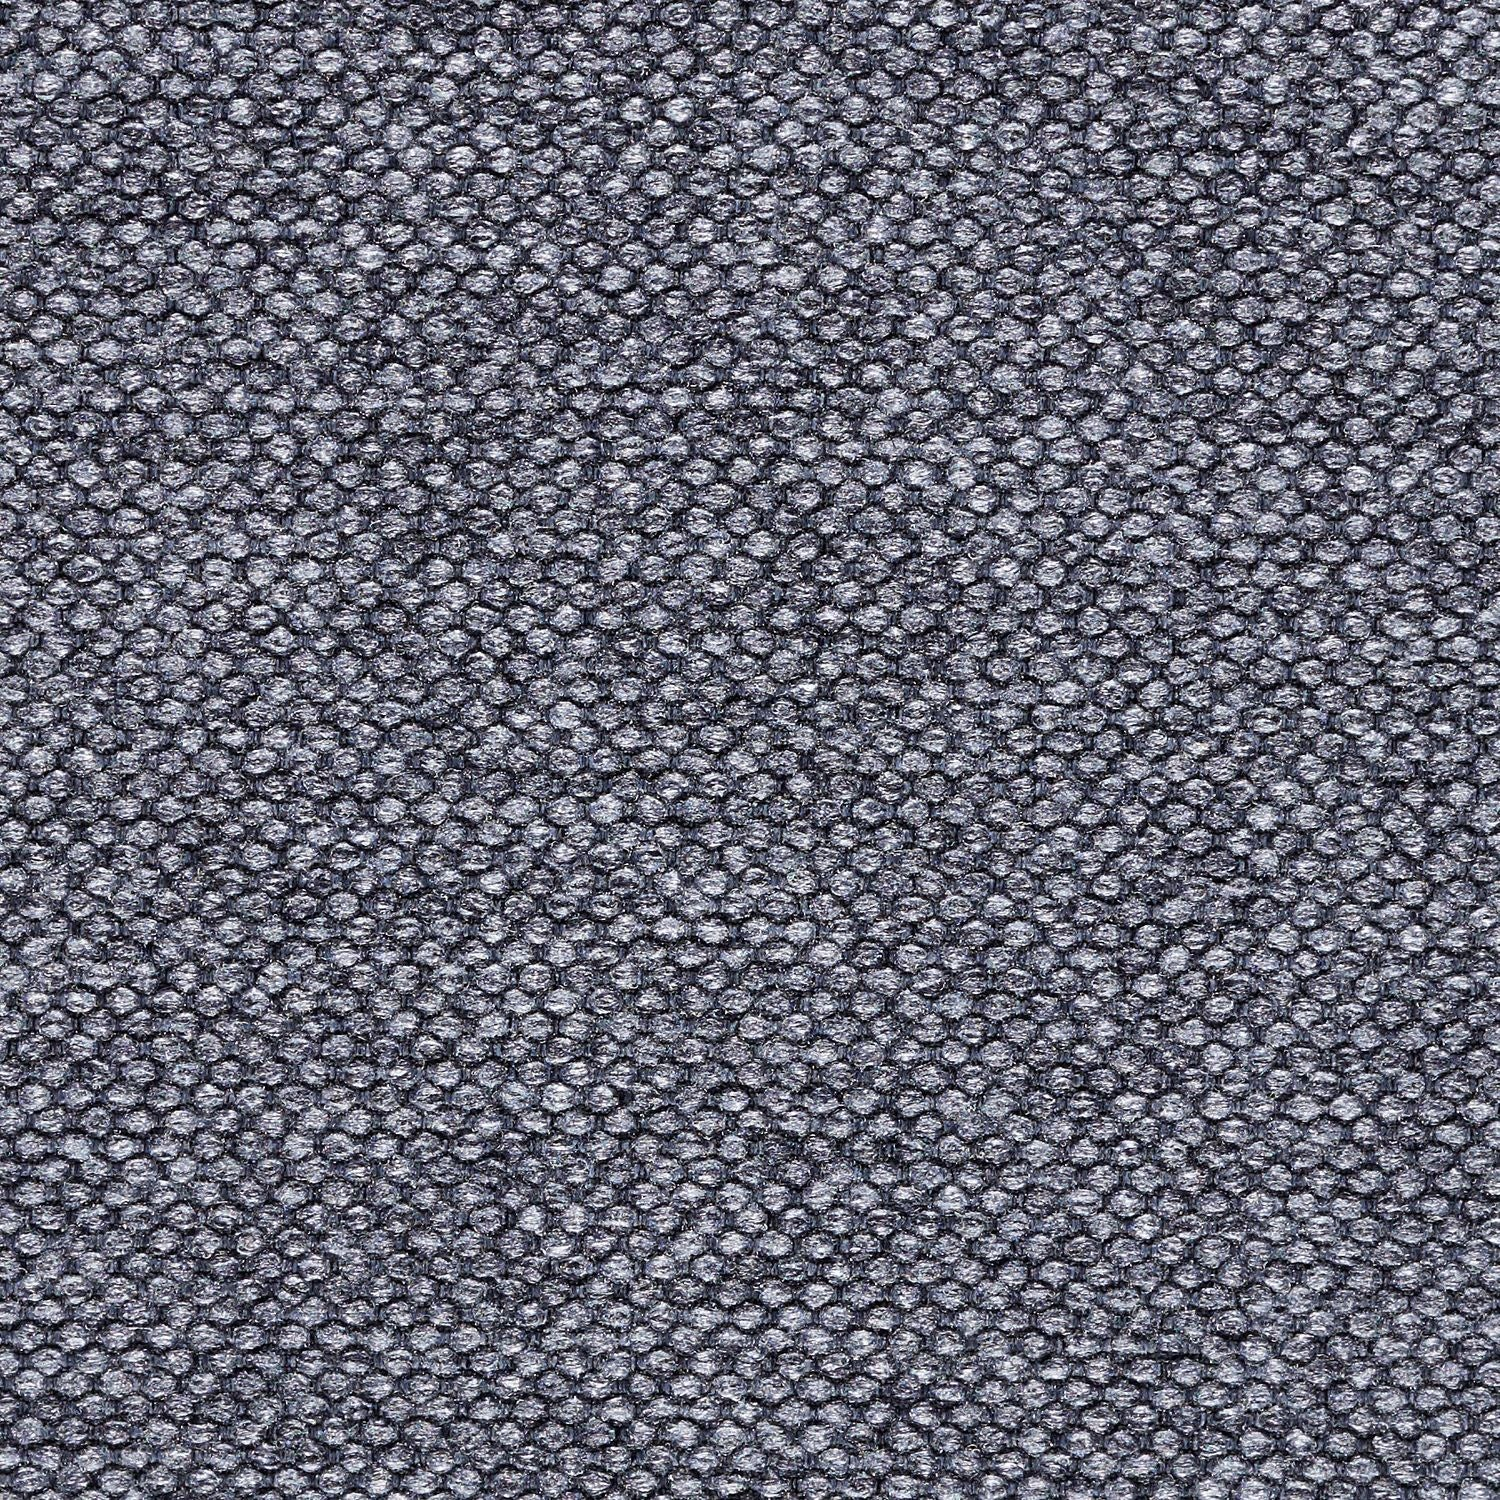 North Sea Tweed|4058-22-D331|North Sea Tweed 4058-22-D331